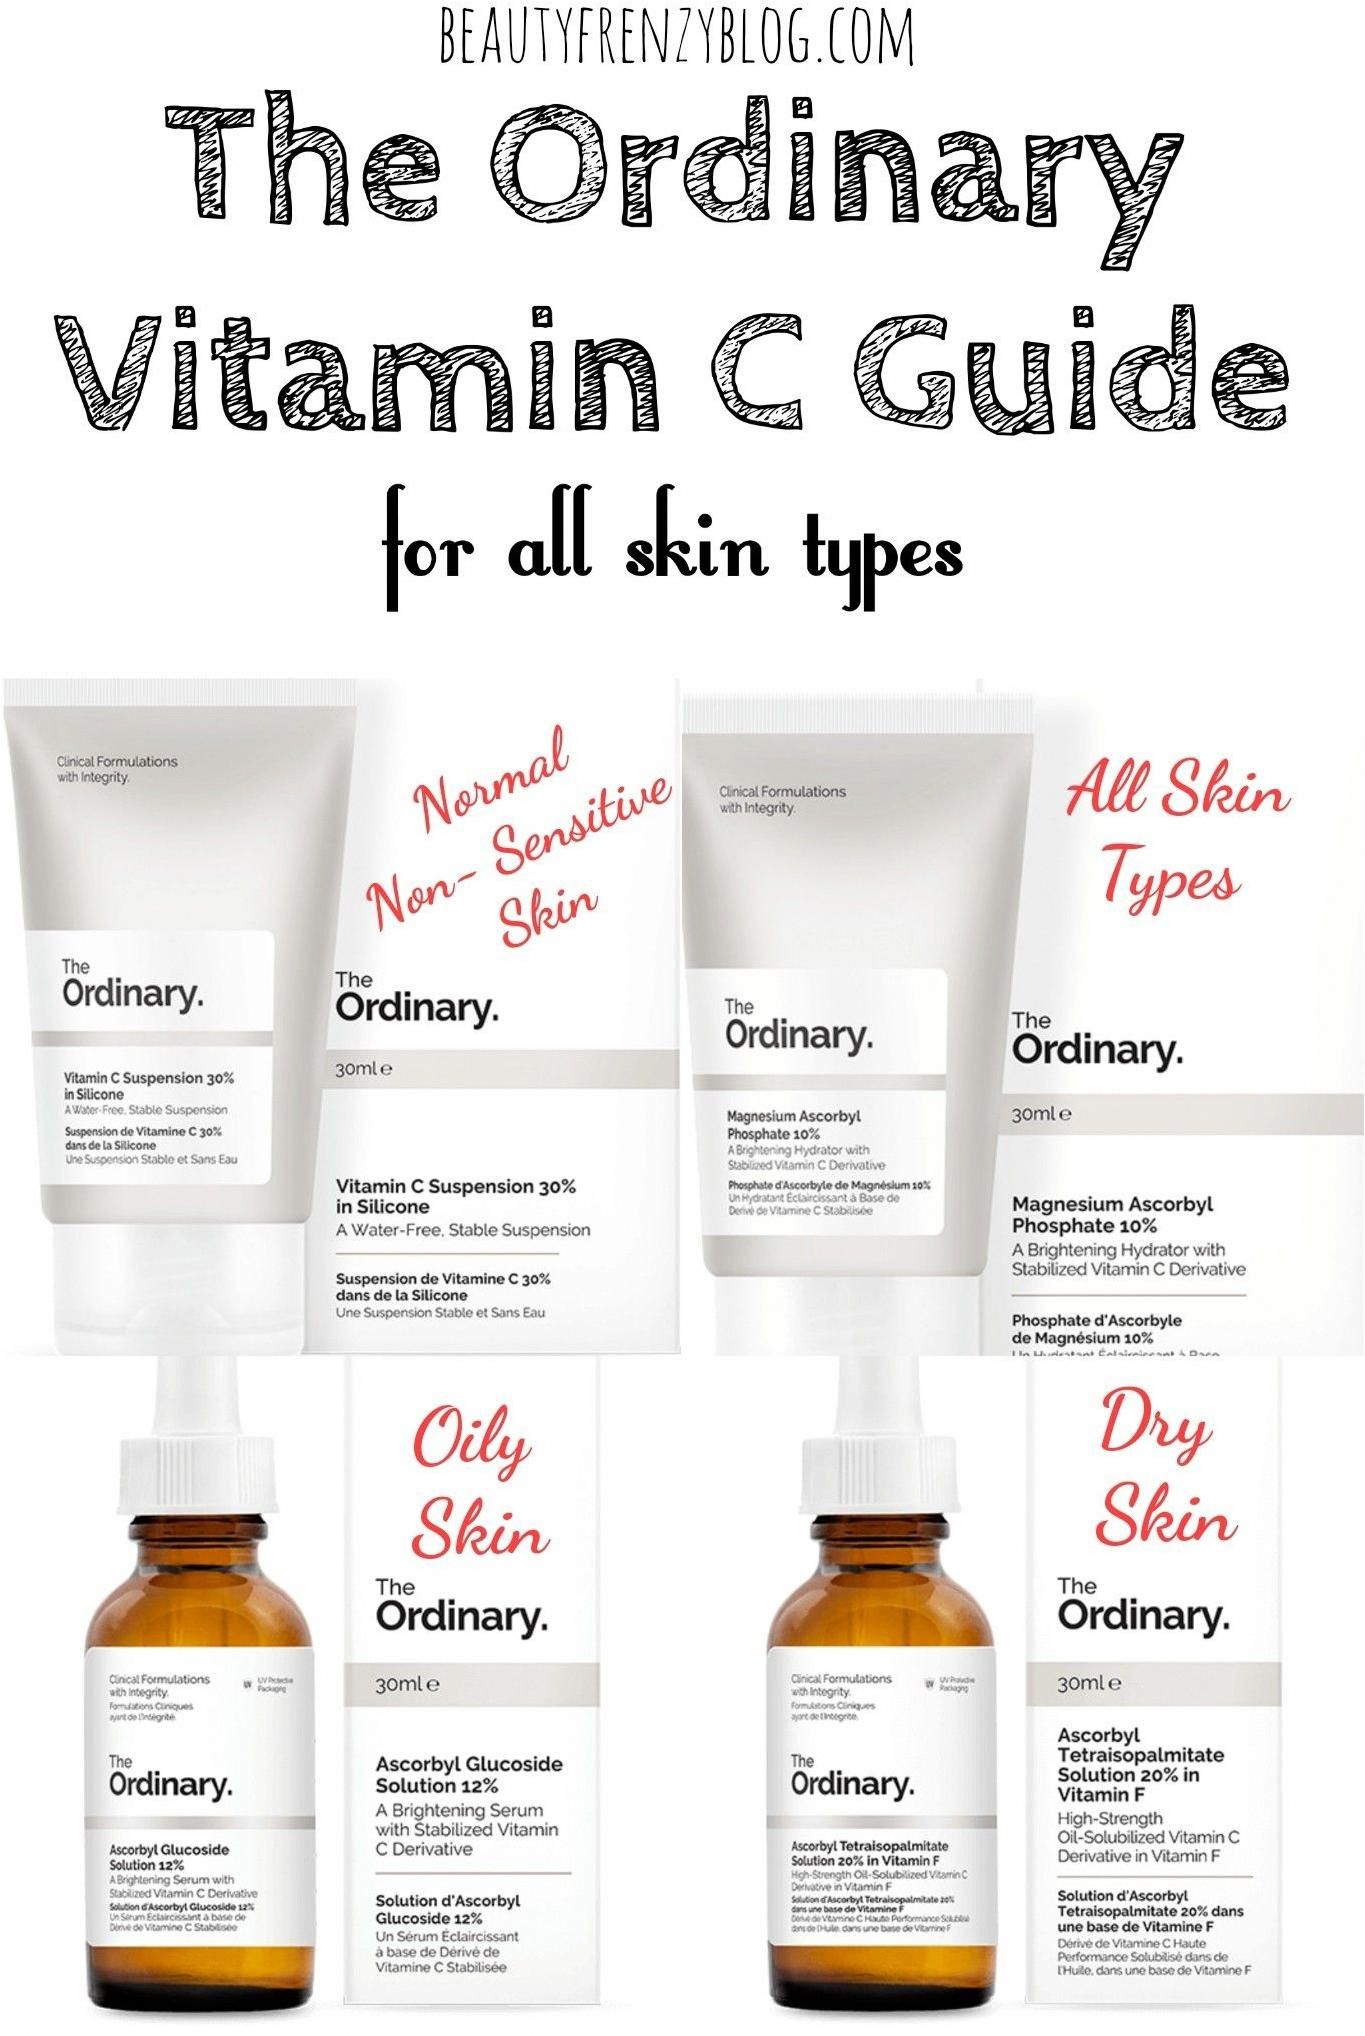 Best Moisturiser For 40 Plus Skin Best Skin Care For 60 Year Old Woman Great Skin Care Lines 20181125 The Ordinary Vitamin C Guide Dry Oily Skin Oily Skin